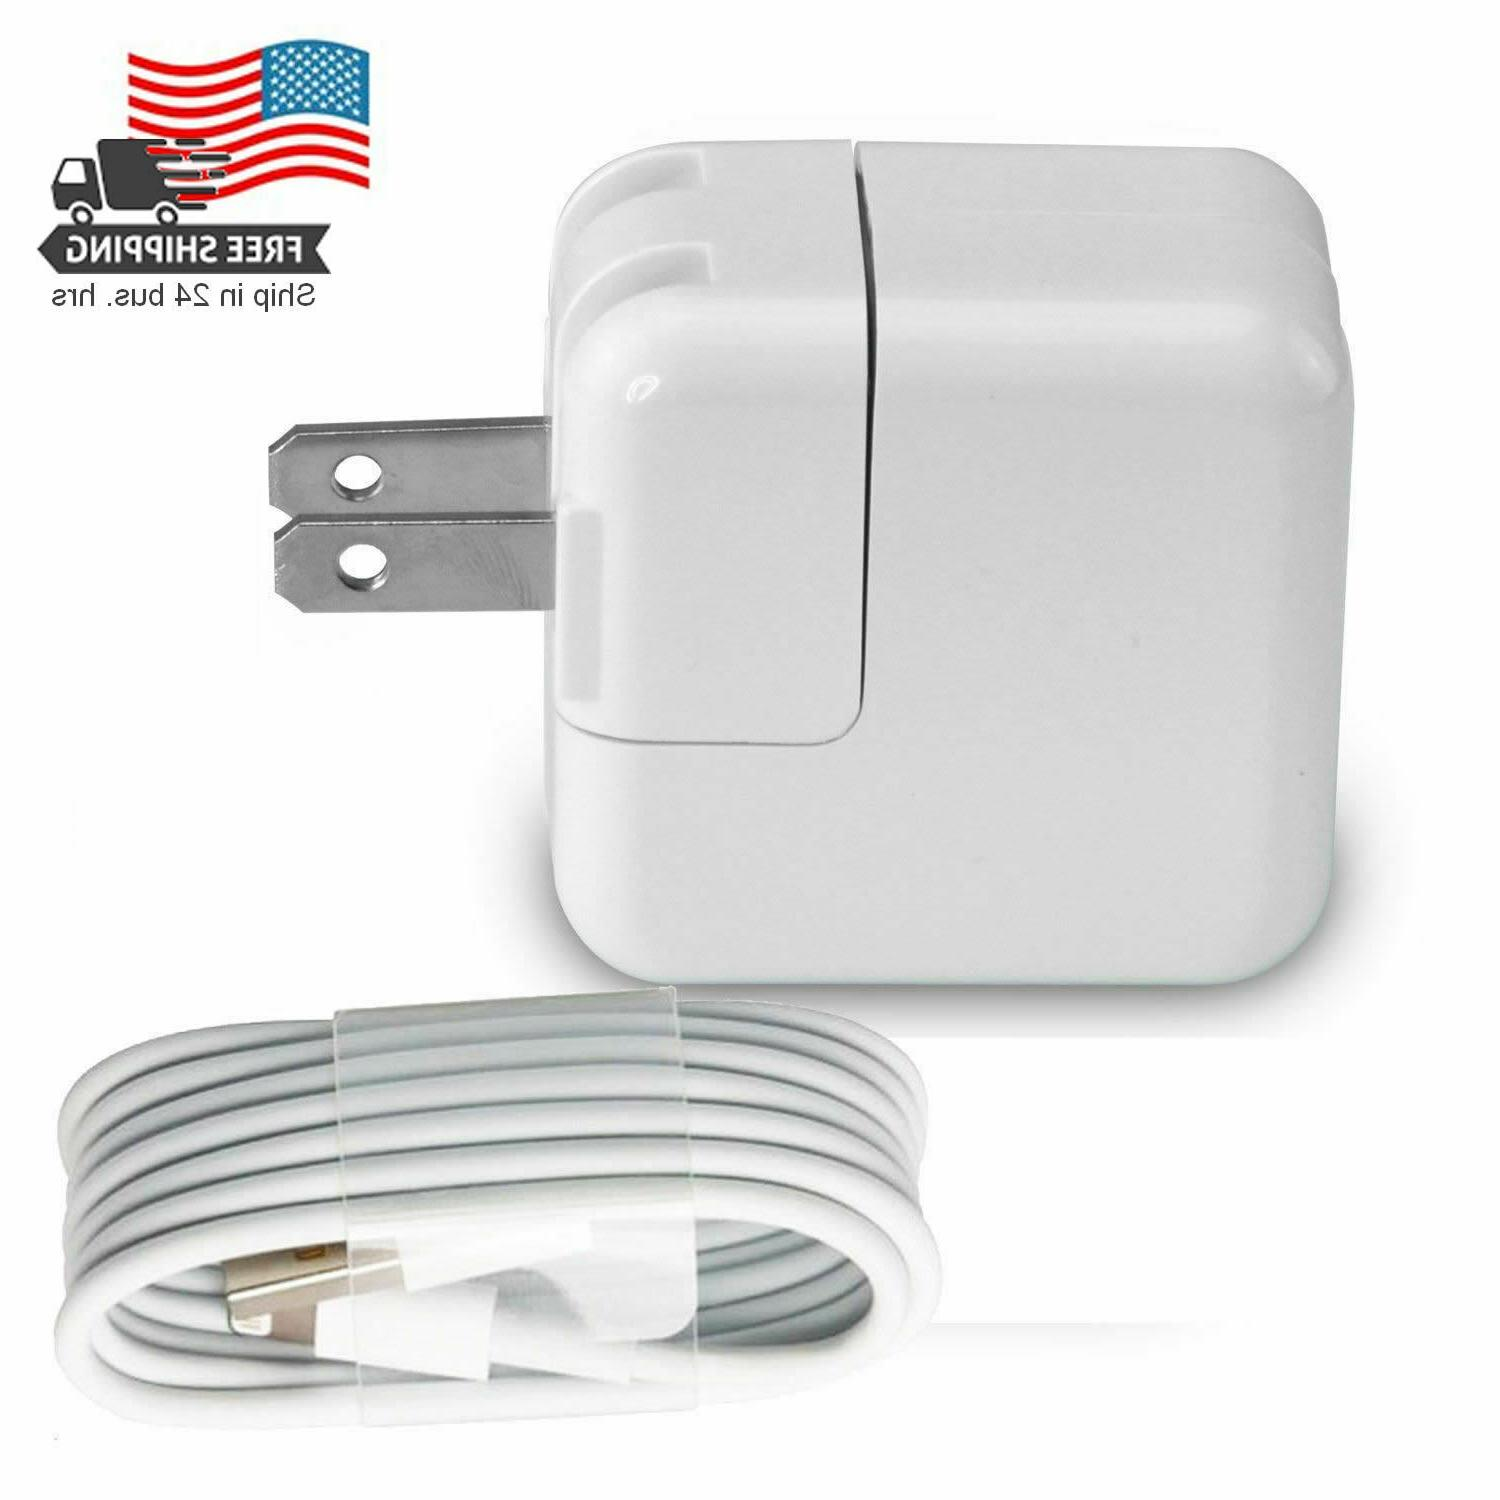 12w usb power adapter wall charger